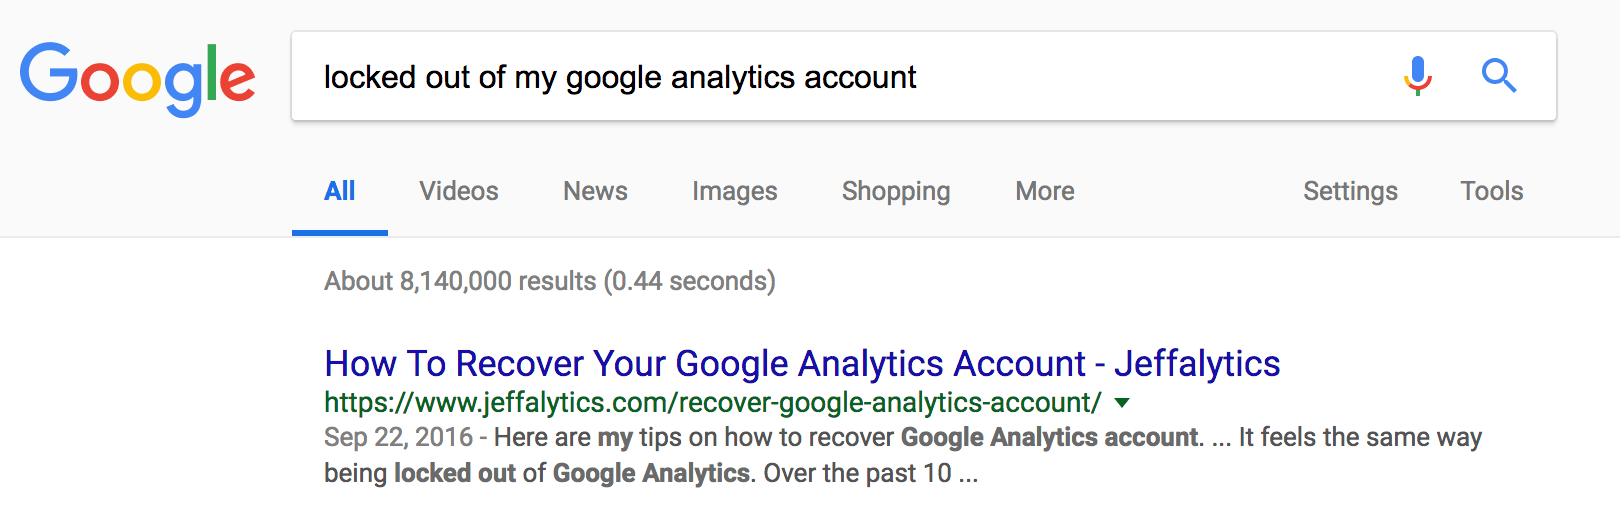 recover google analytics account